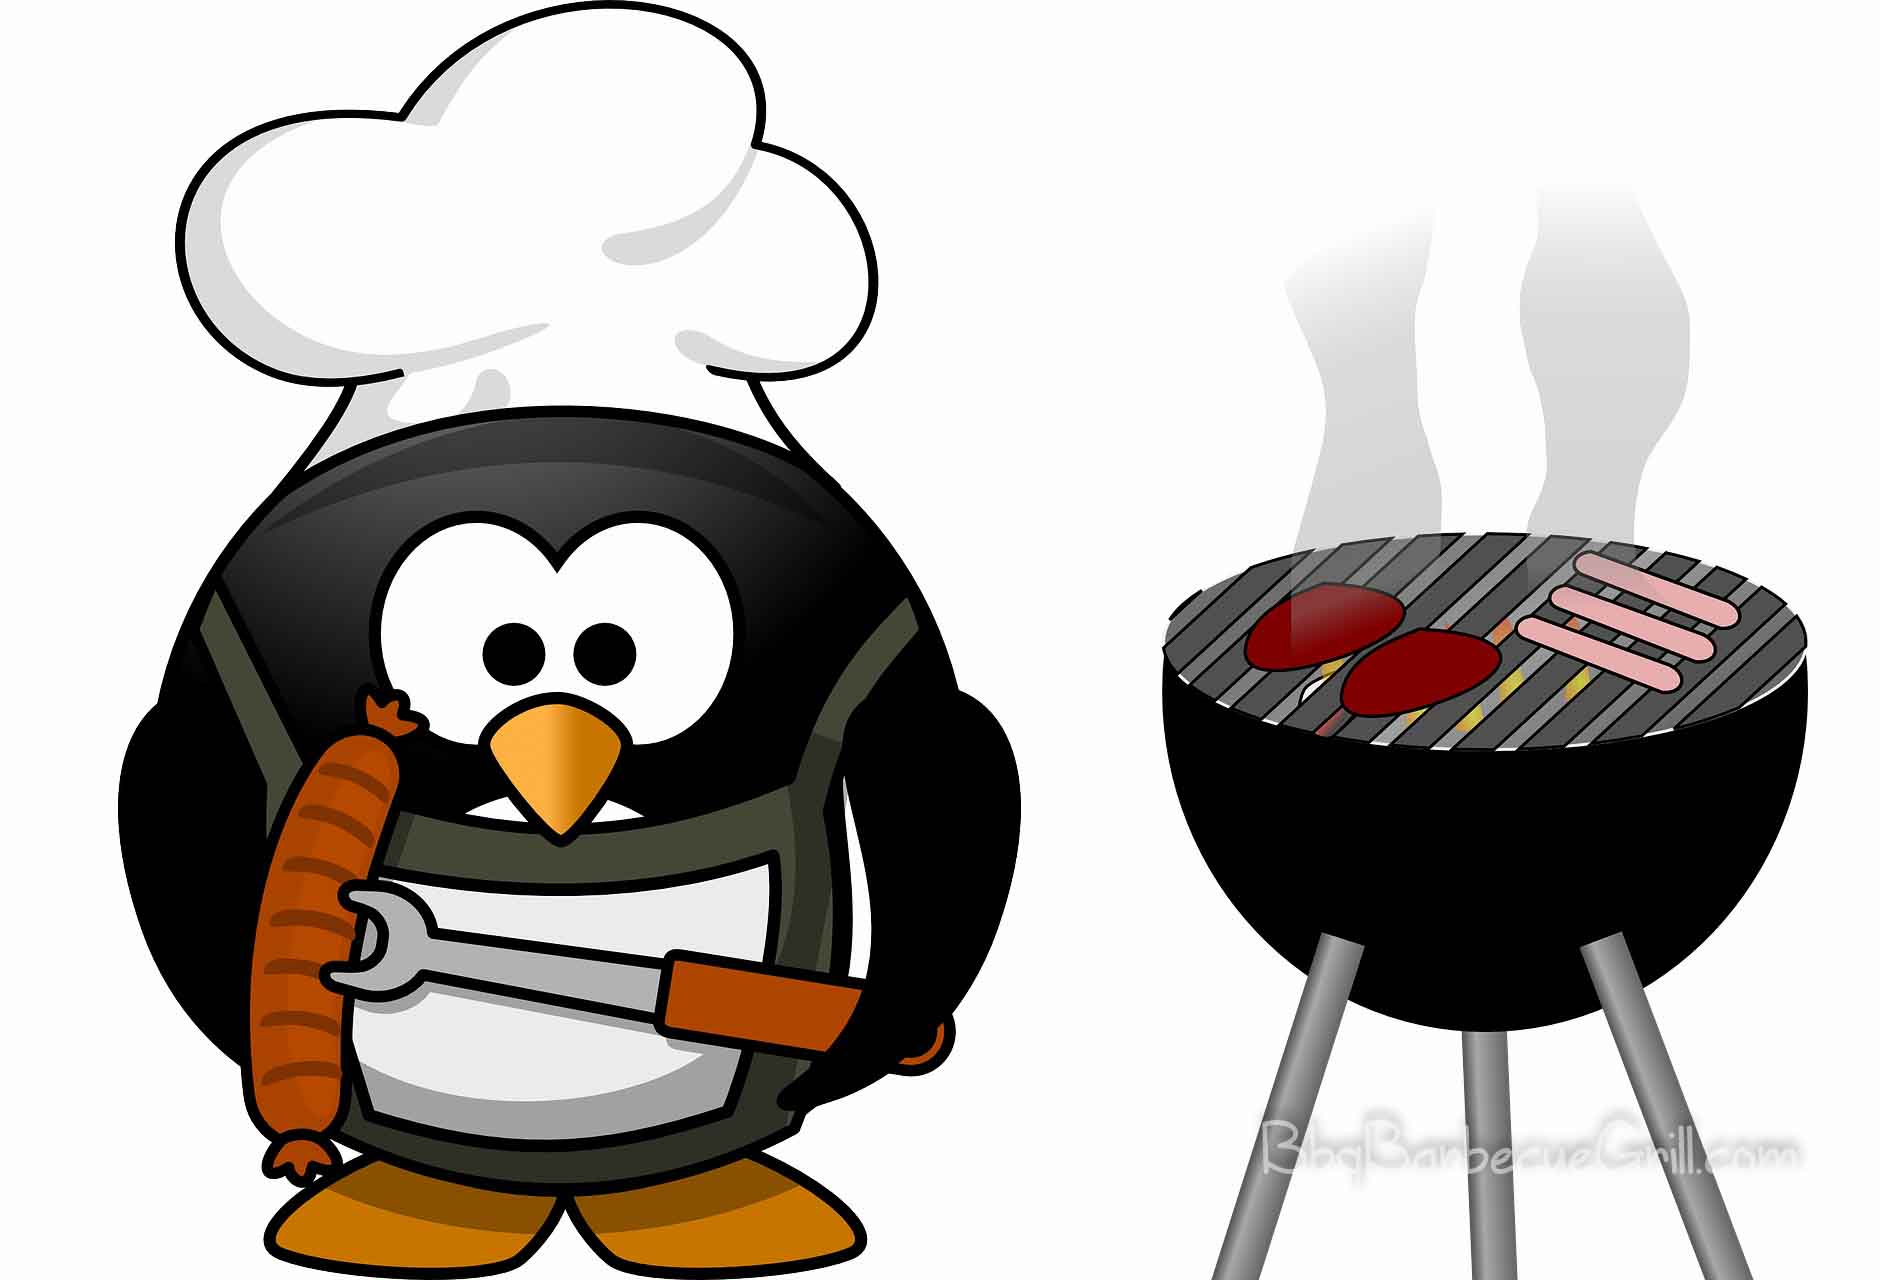 Grilling tips for beginners